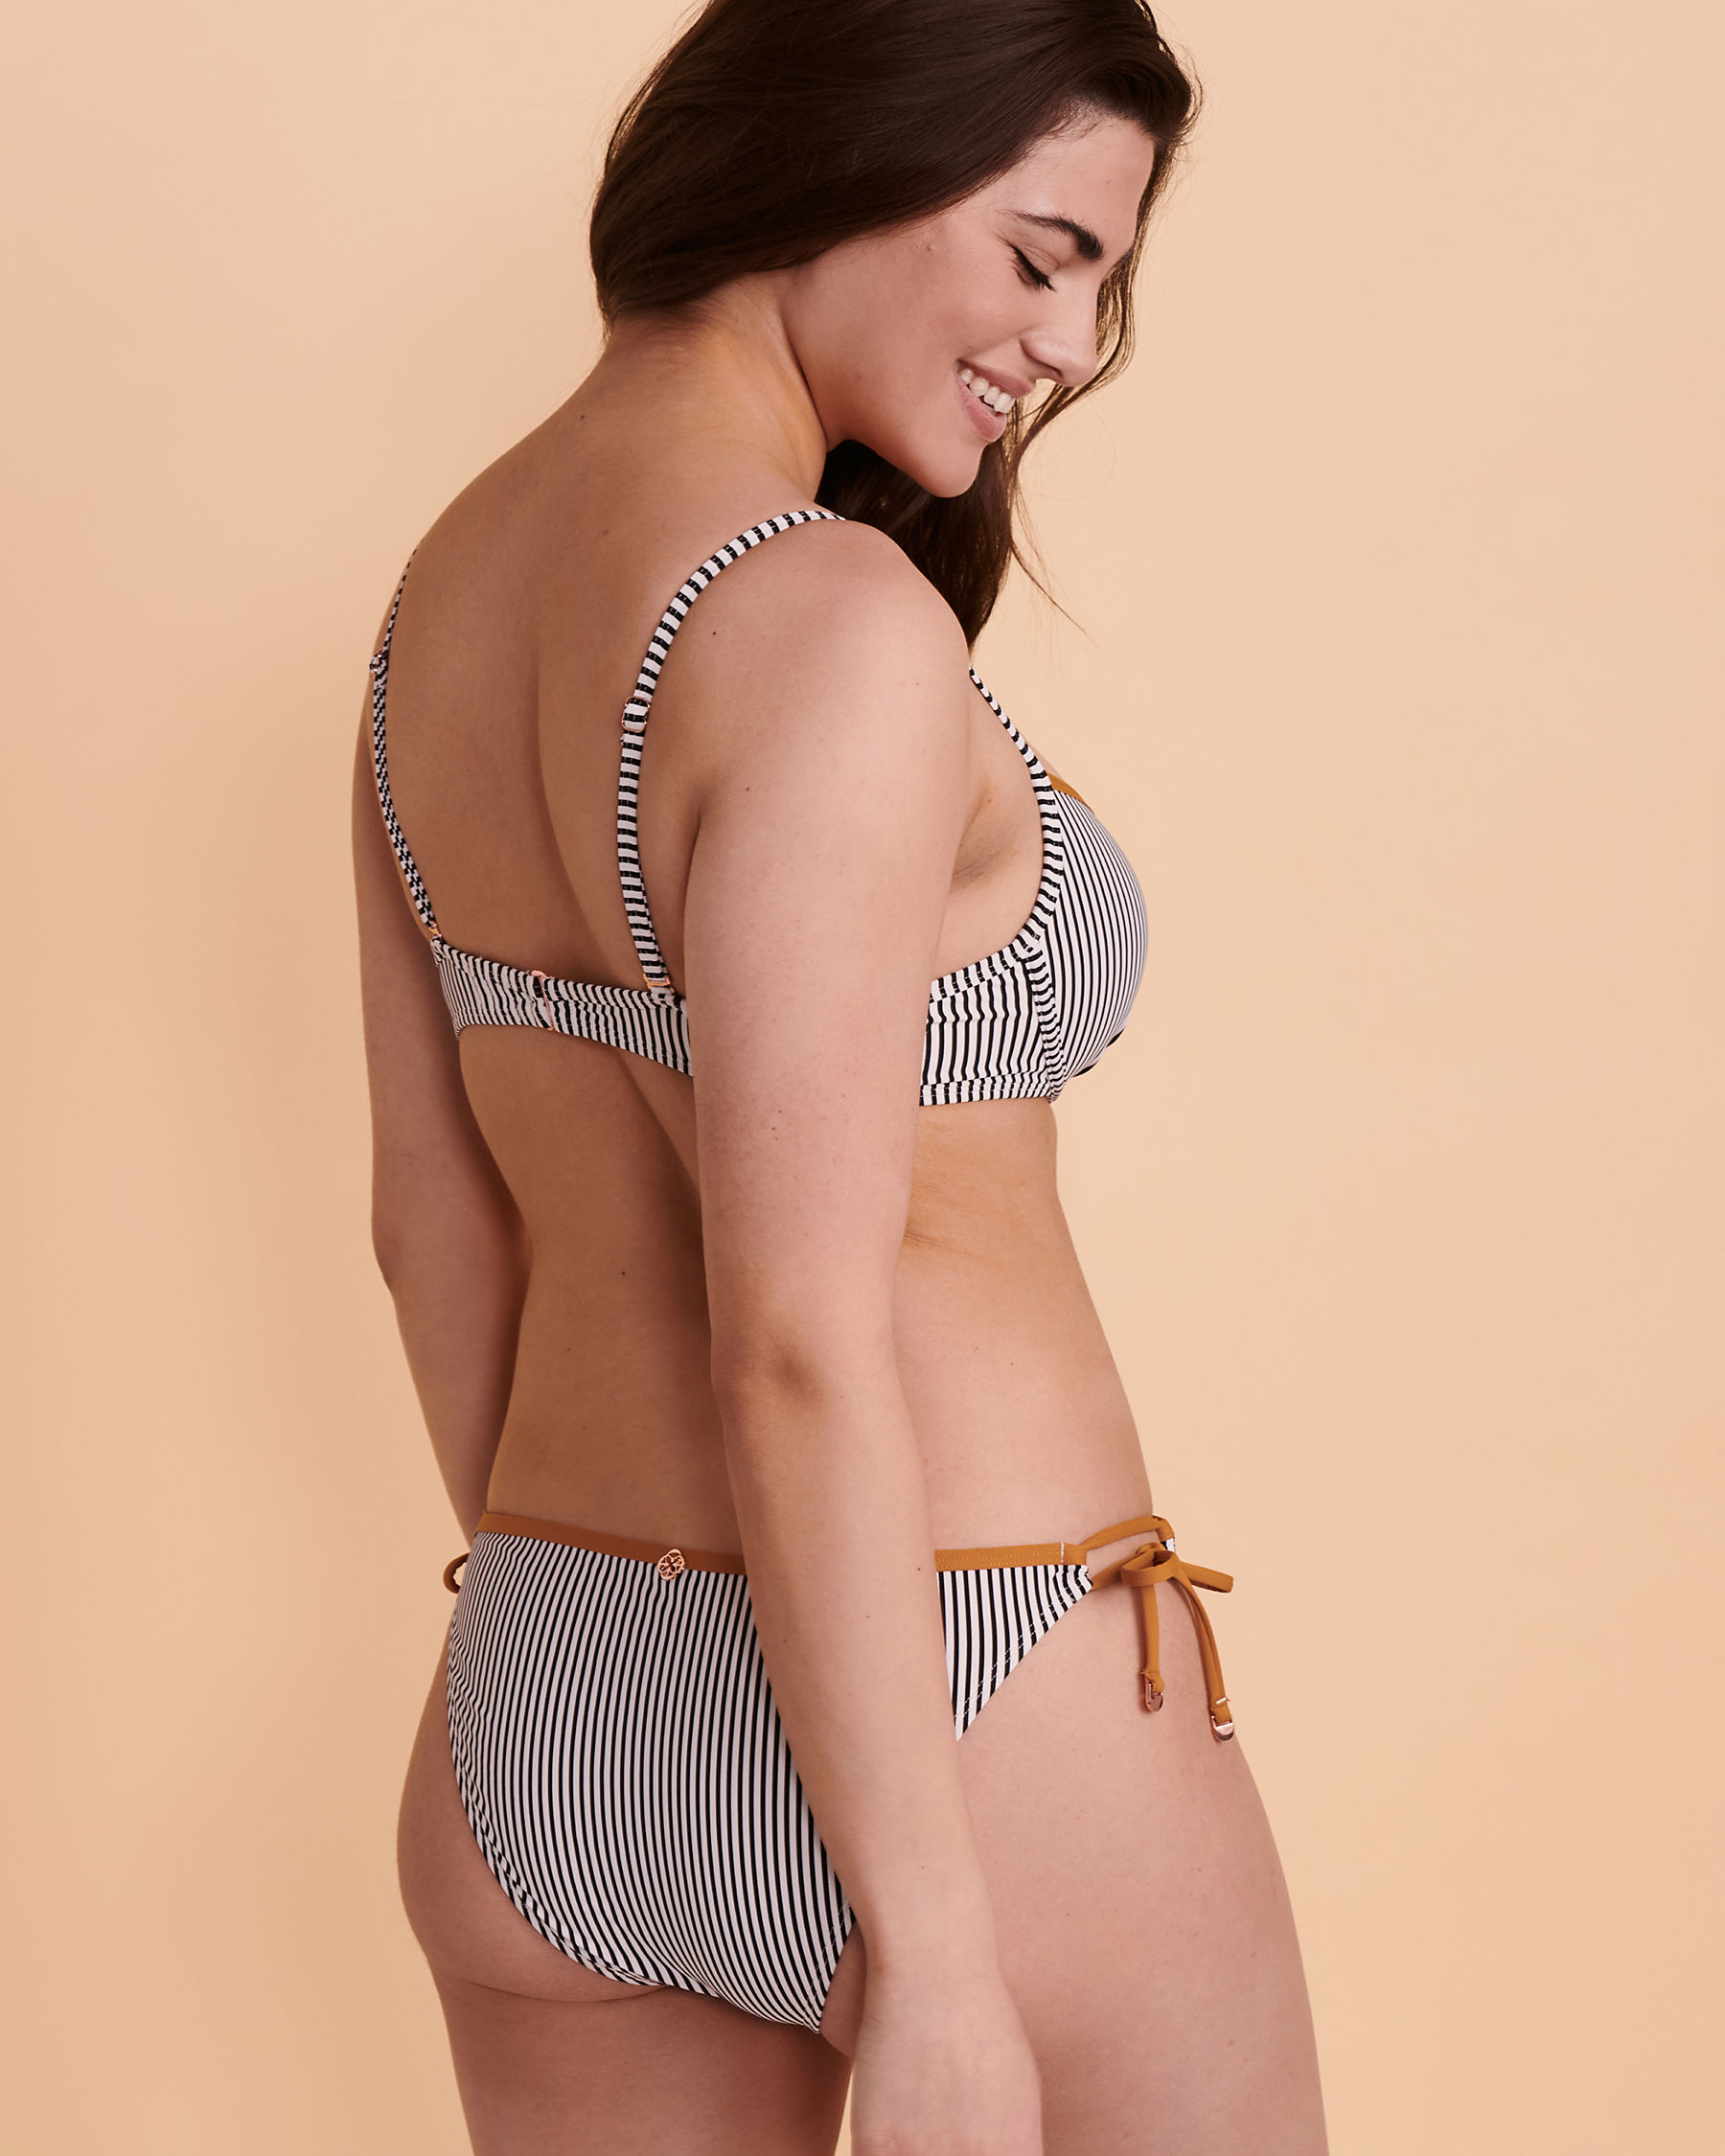 TURQUOISE COUTURE TAUPICAL Push-up Bikini Top Stripes 01100035 - View2